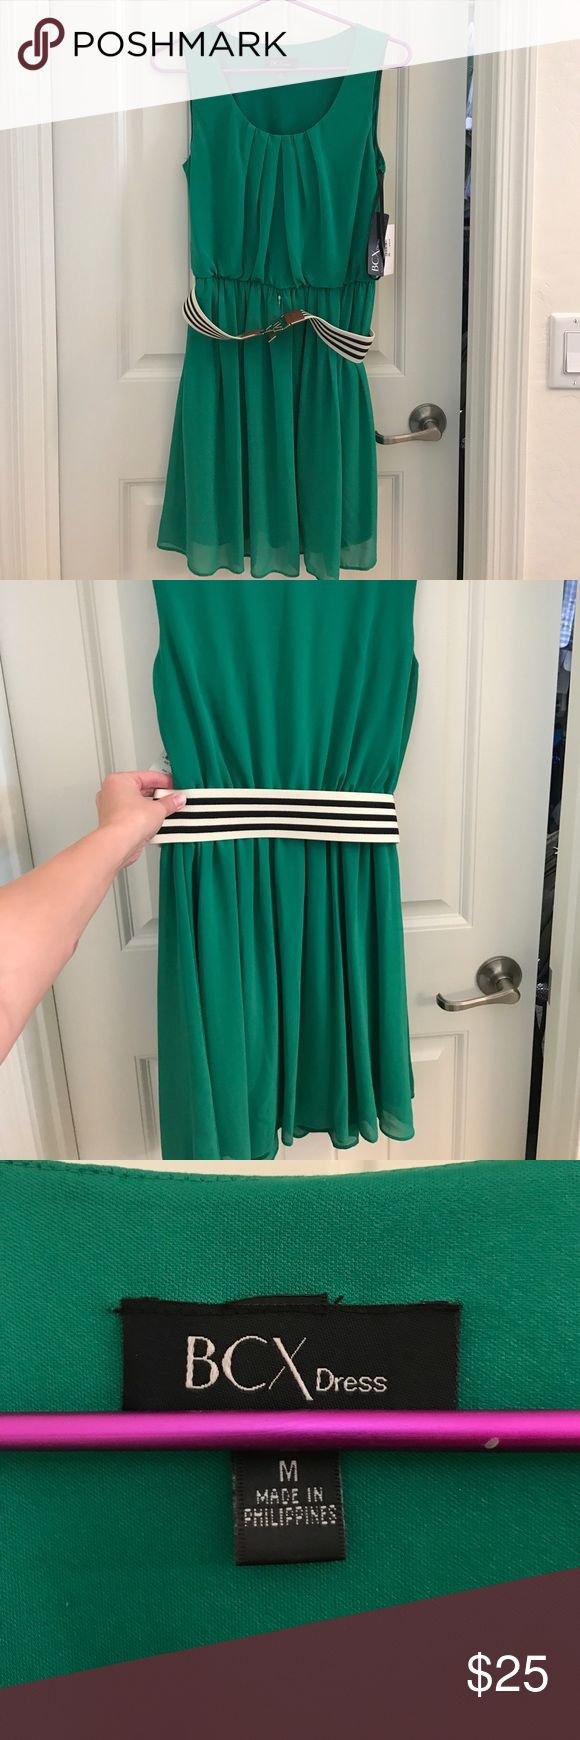 BCX sleeveless green dress size M Short green dress perfect for spring afternoons about town. Comes with black and white striped accent belt. BCX Dresses